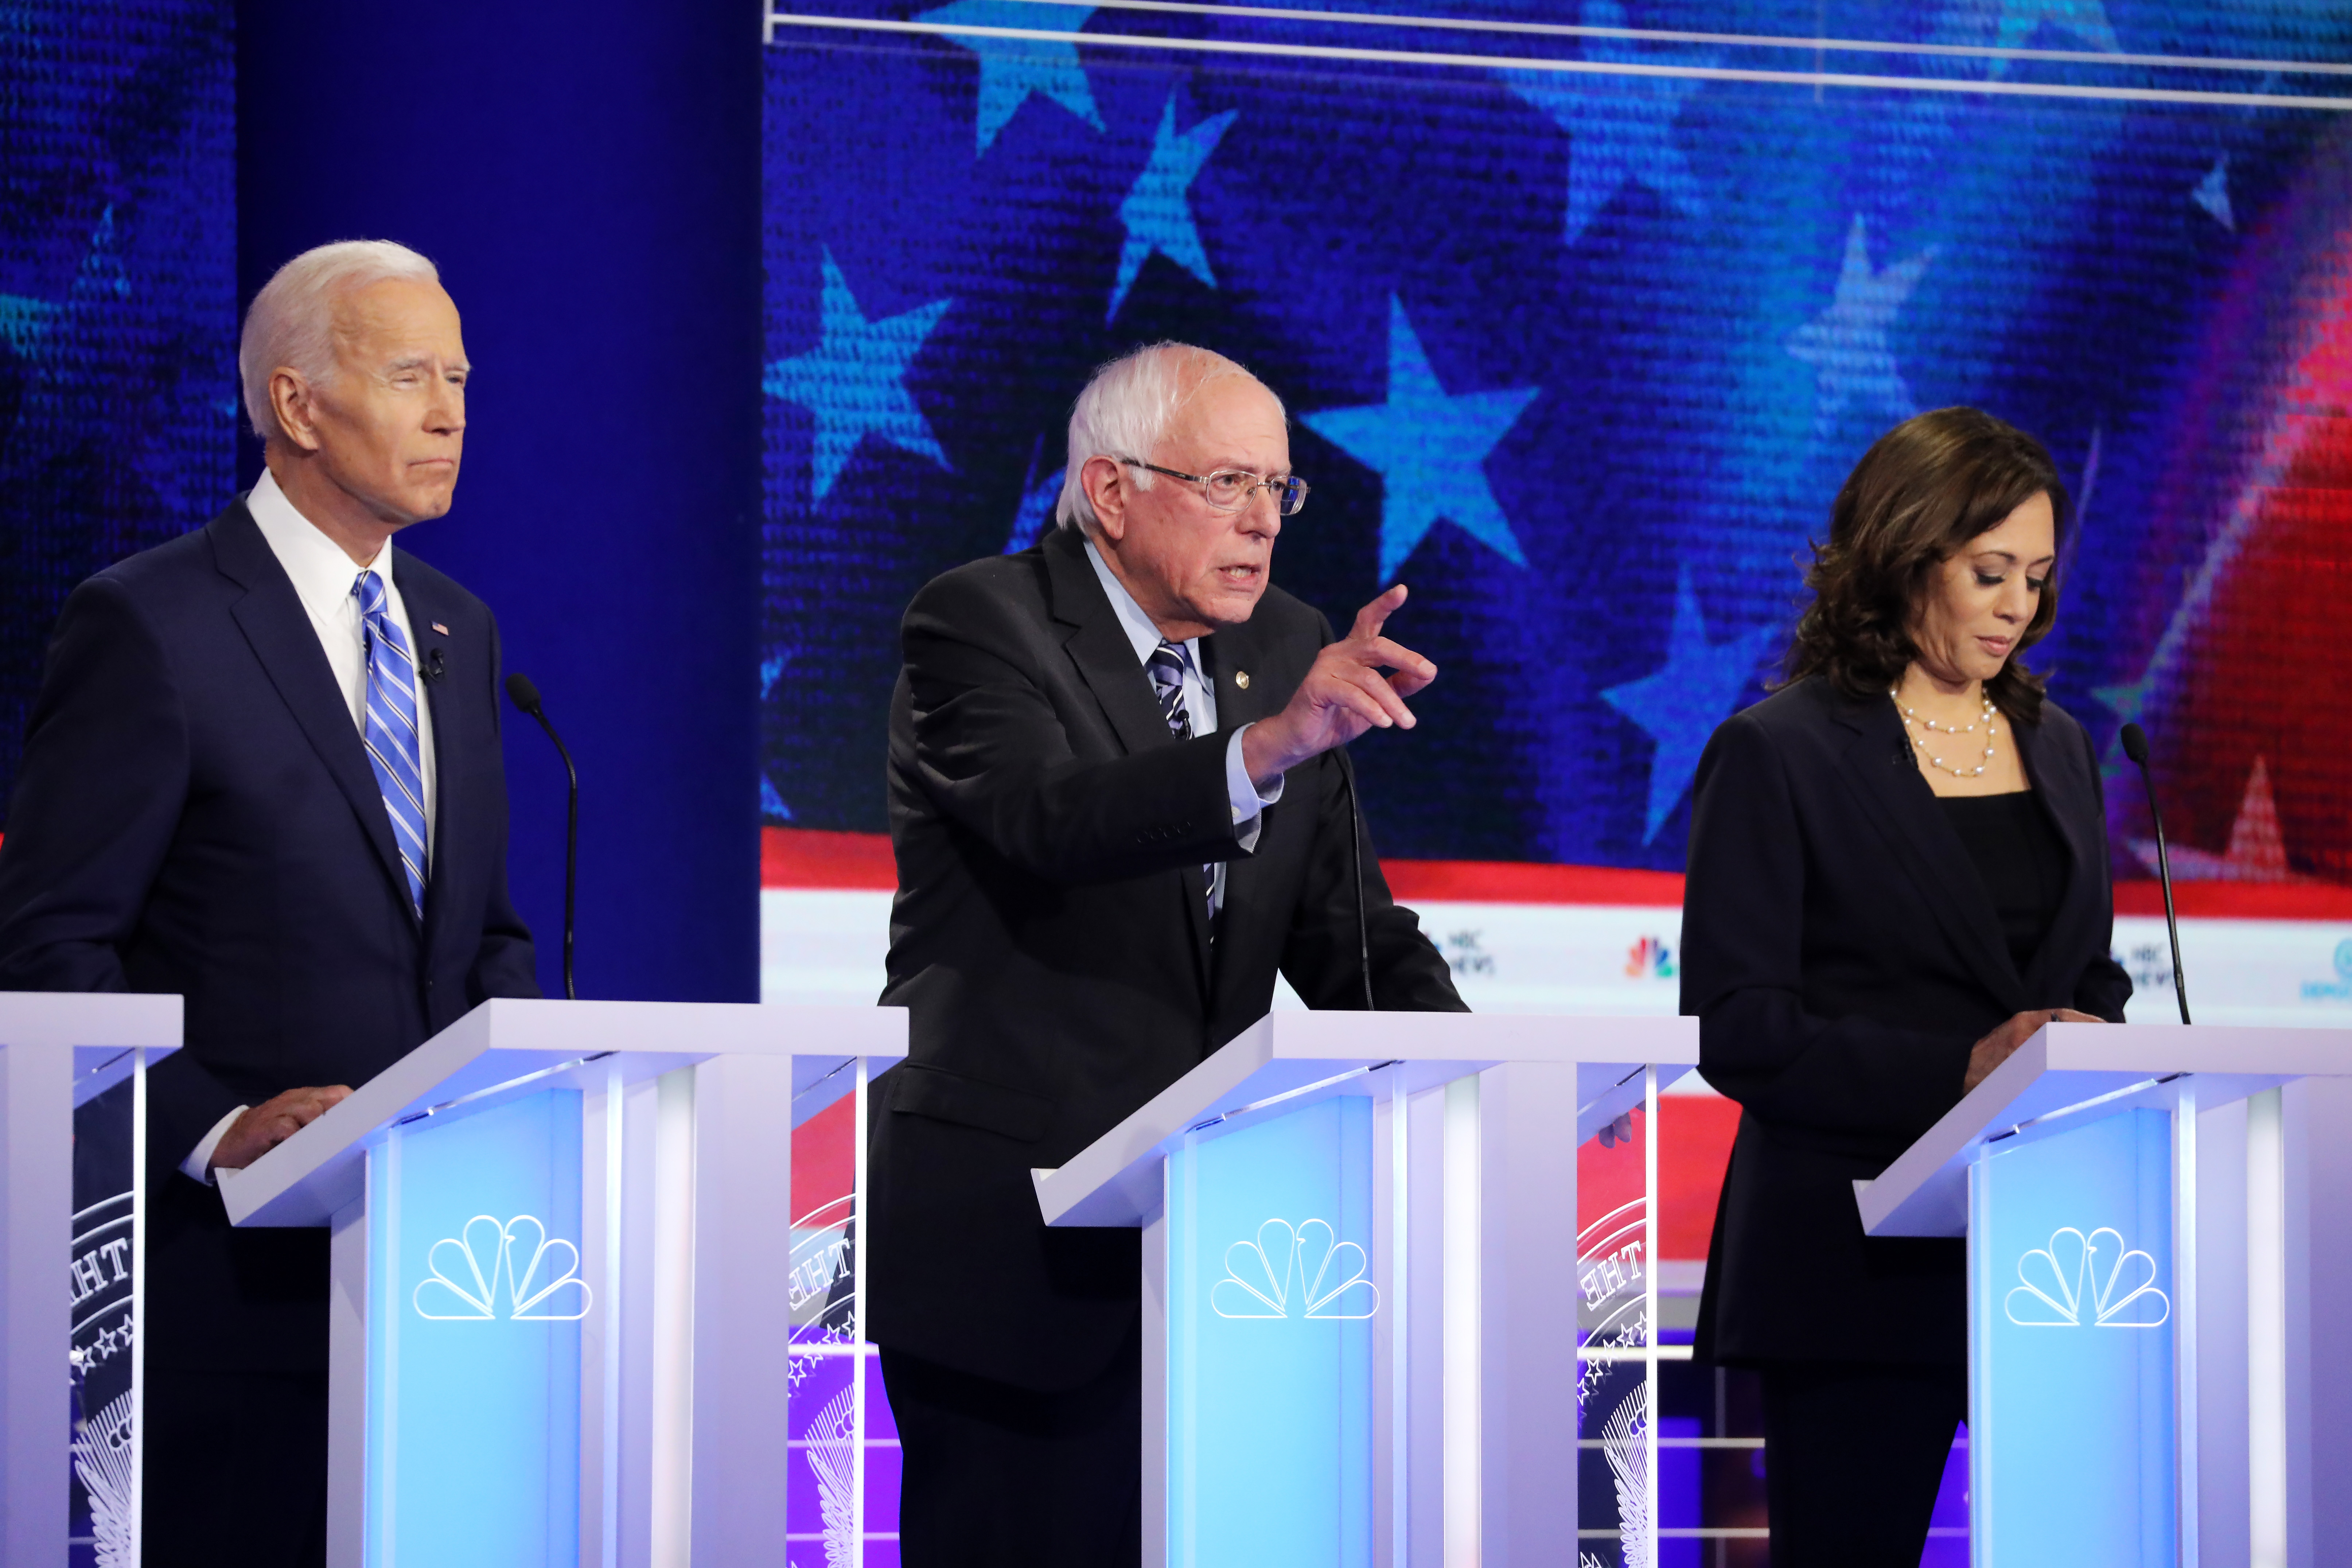 Six political scientists react to the first Democratic primary debates